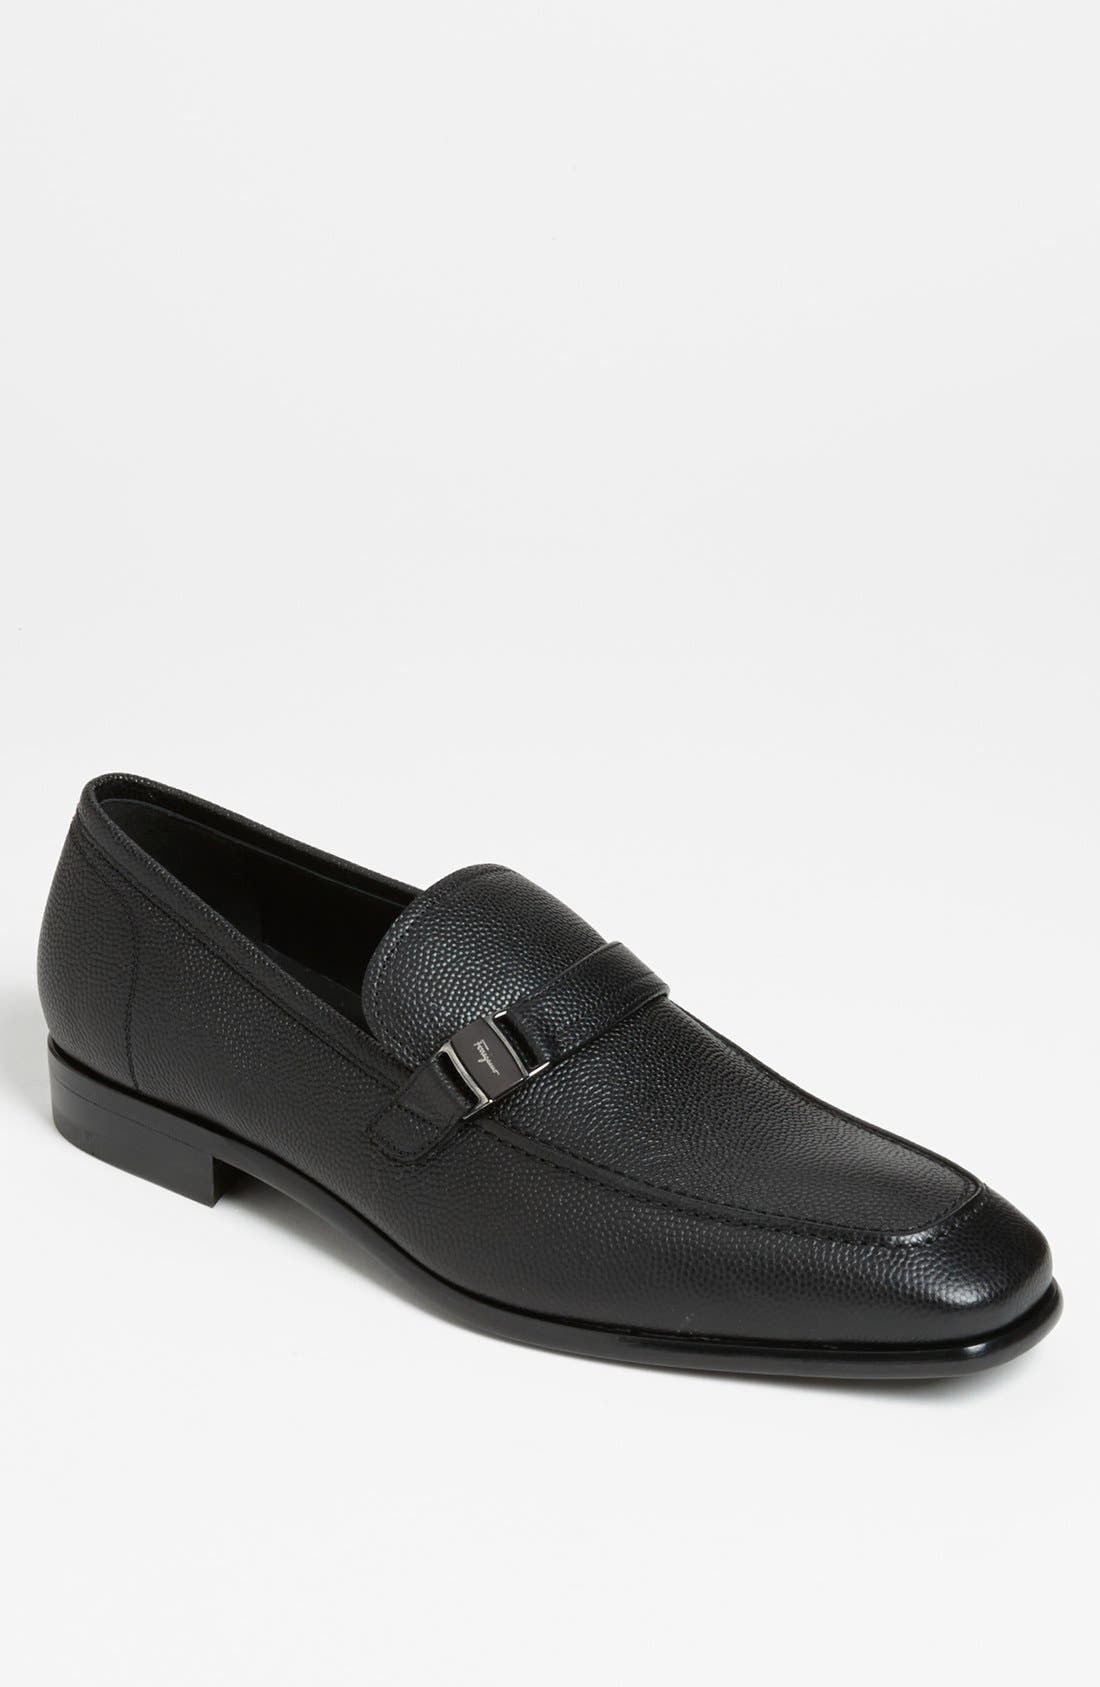 Main Image - Salvatore Ferragamo 'Svezia' Loafer